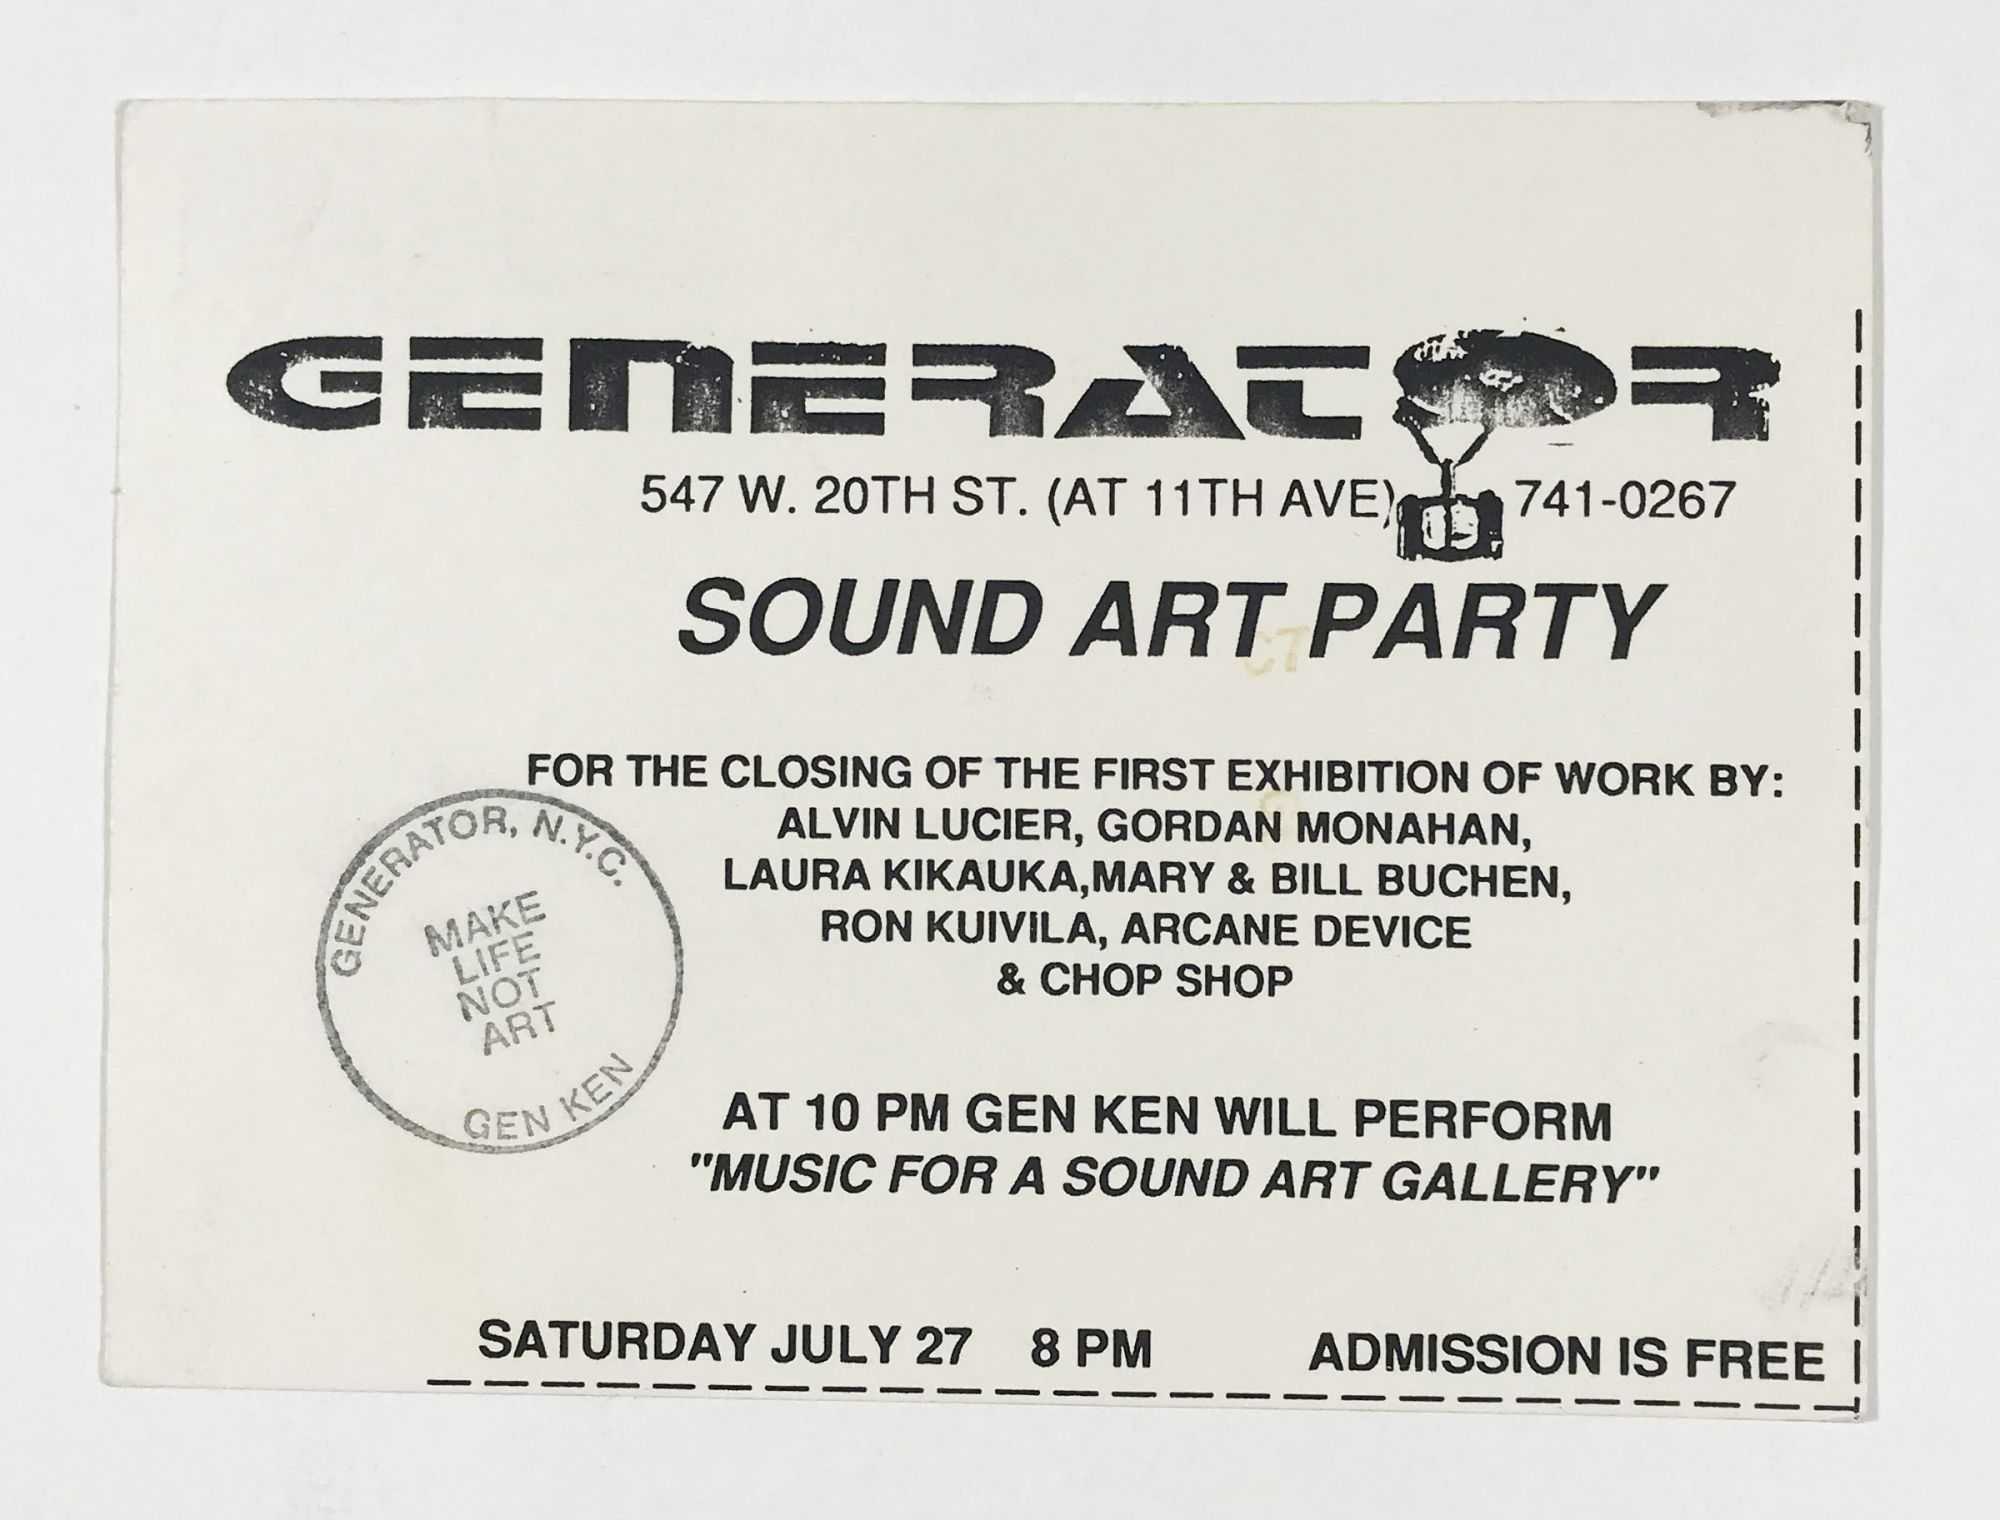 Postcard Invitation to the Sound Art Party at Generator by Alvin Lucier on  Division Leap